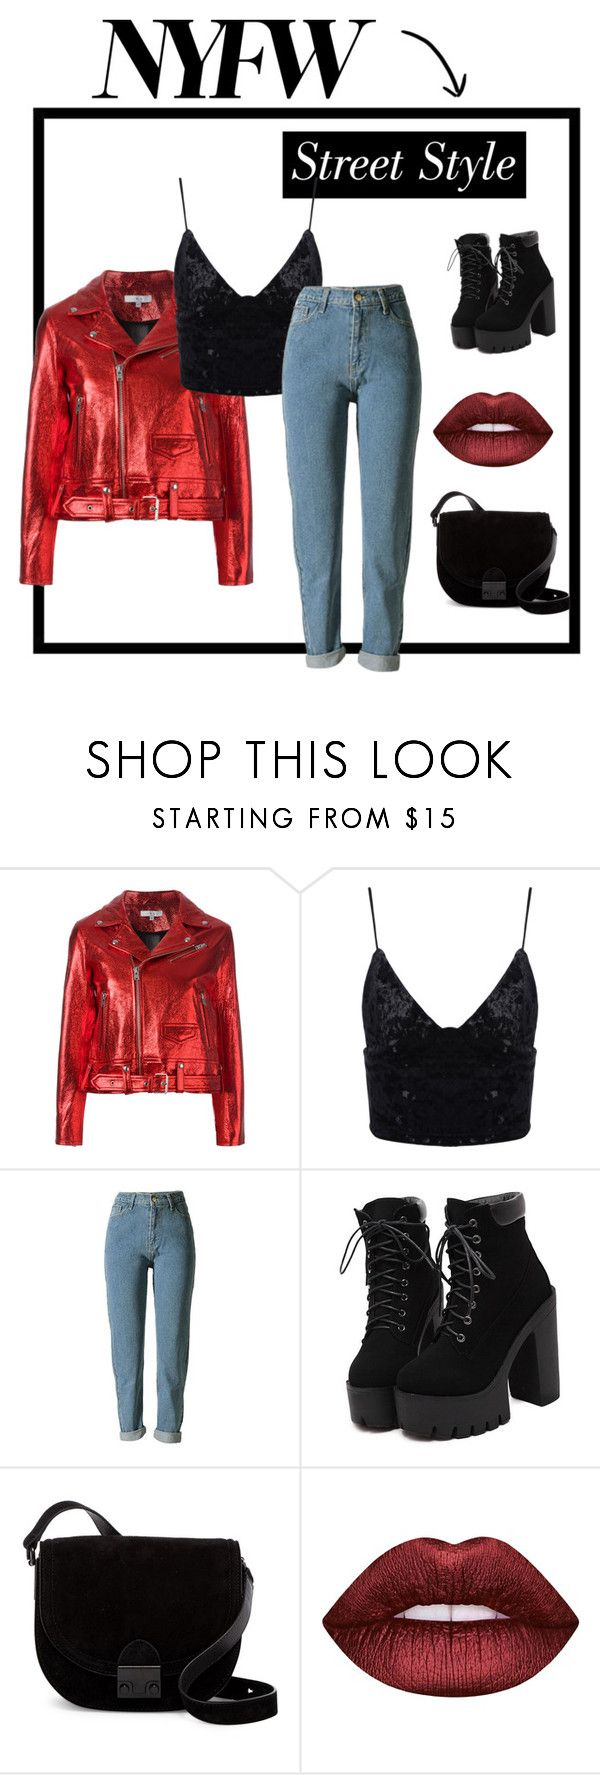 """""""NYFW Street Style"""" by audreyhortt ❤ liked on Polyvore featuring IRO, Loeffler Randall, Lime Crime, StreetStyle, NYFW, challenge and nyfwstreetstyle"""